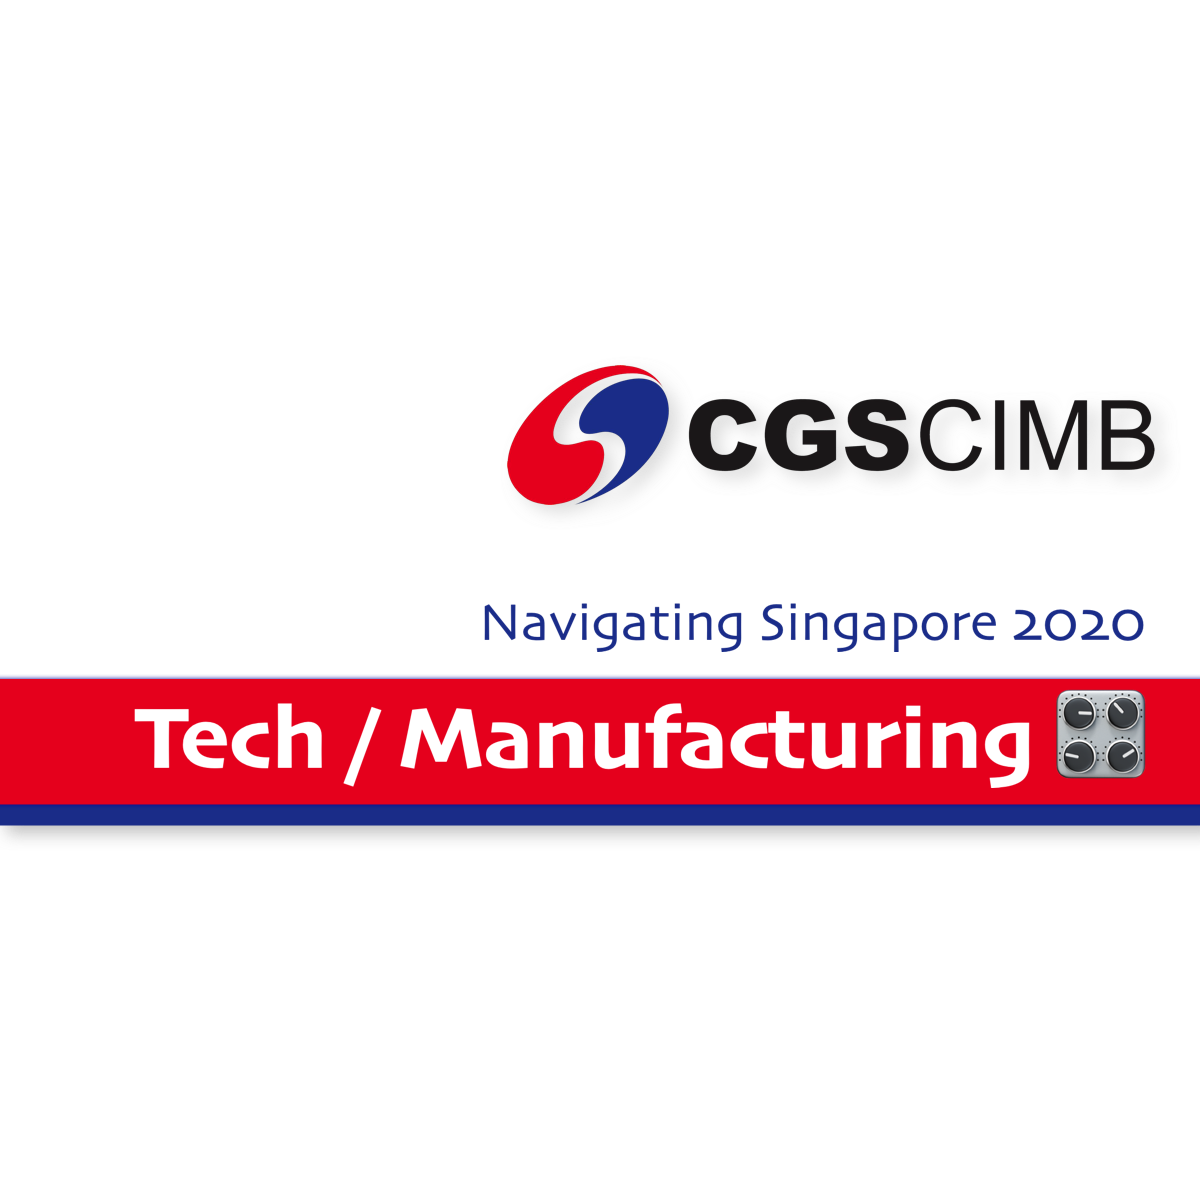 Tech Manufacturing Sector 2020 Outlook - CGS-CIMB Research | SGinvestors.io